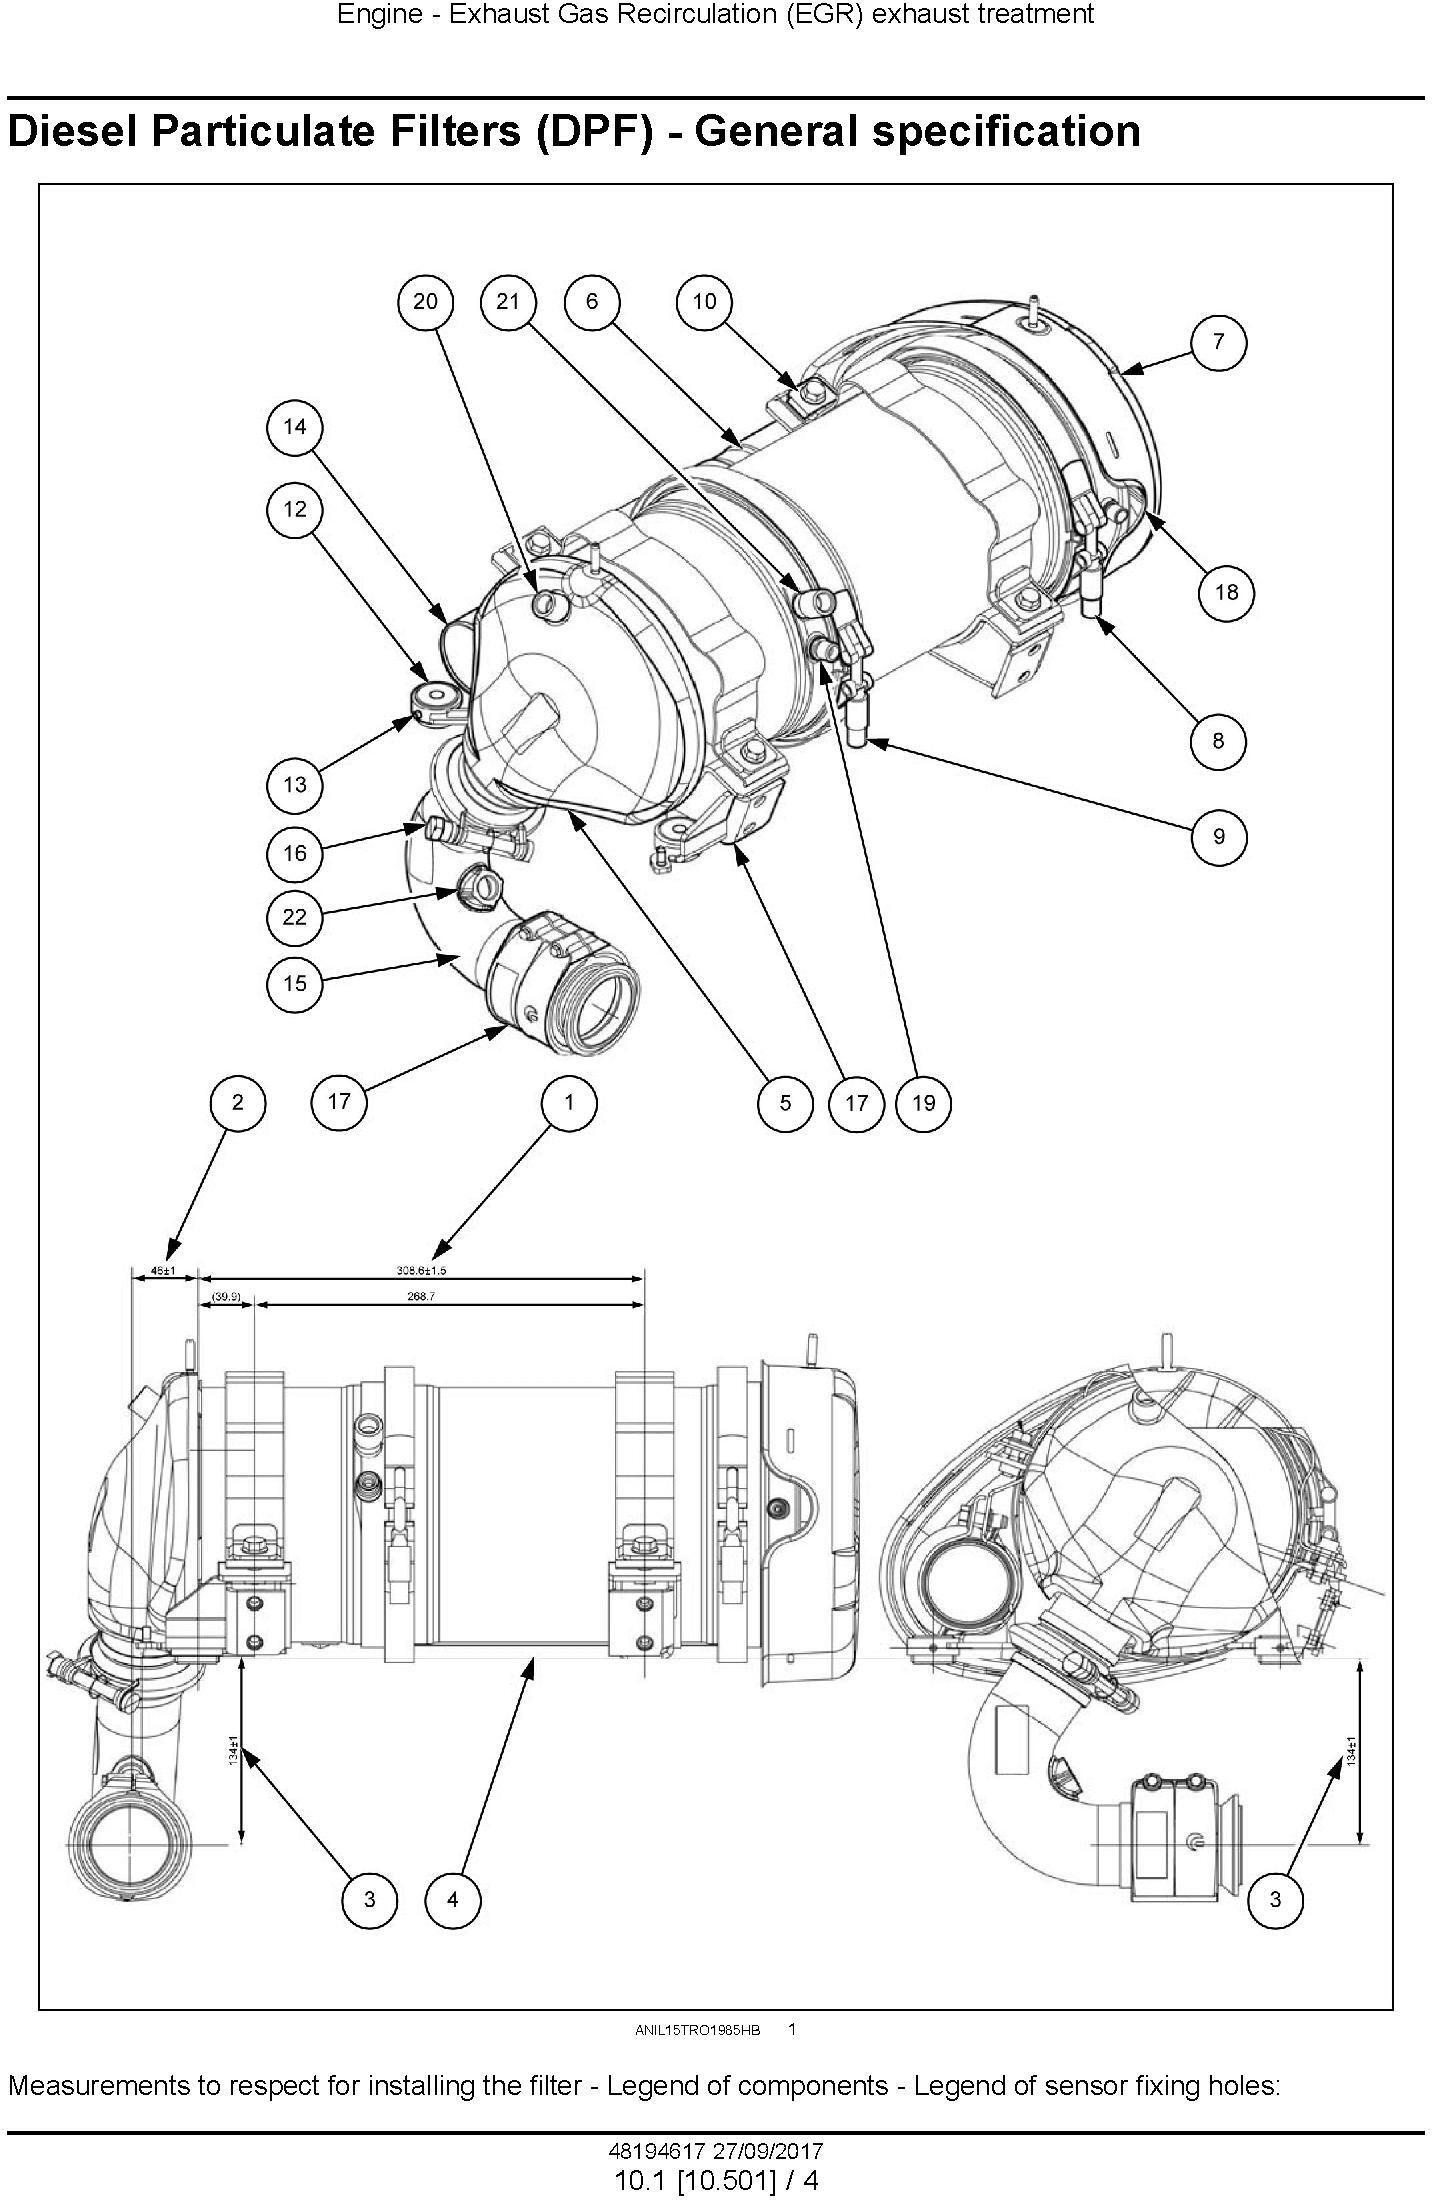 New Holland TD5.85, TD5.95, TD5.105, TD5.115 Tractor Service Manual (Europe) - 1